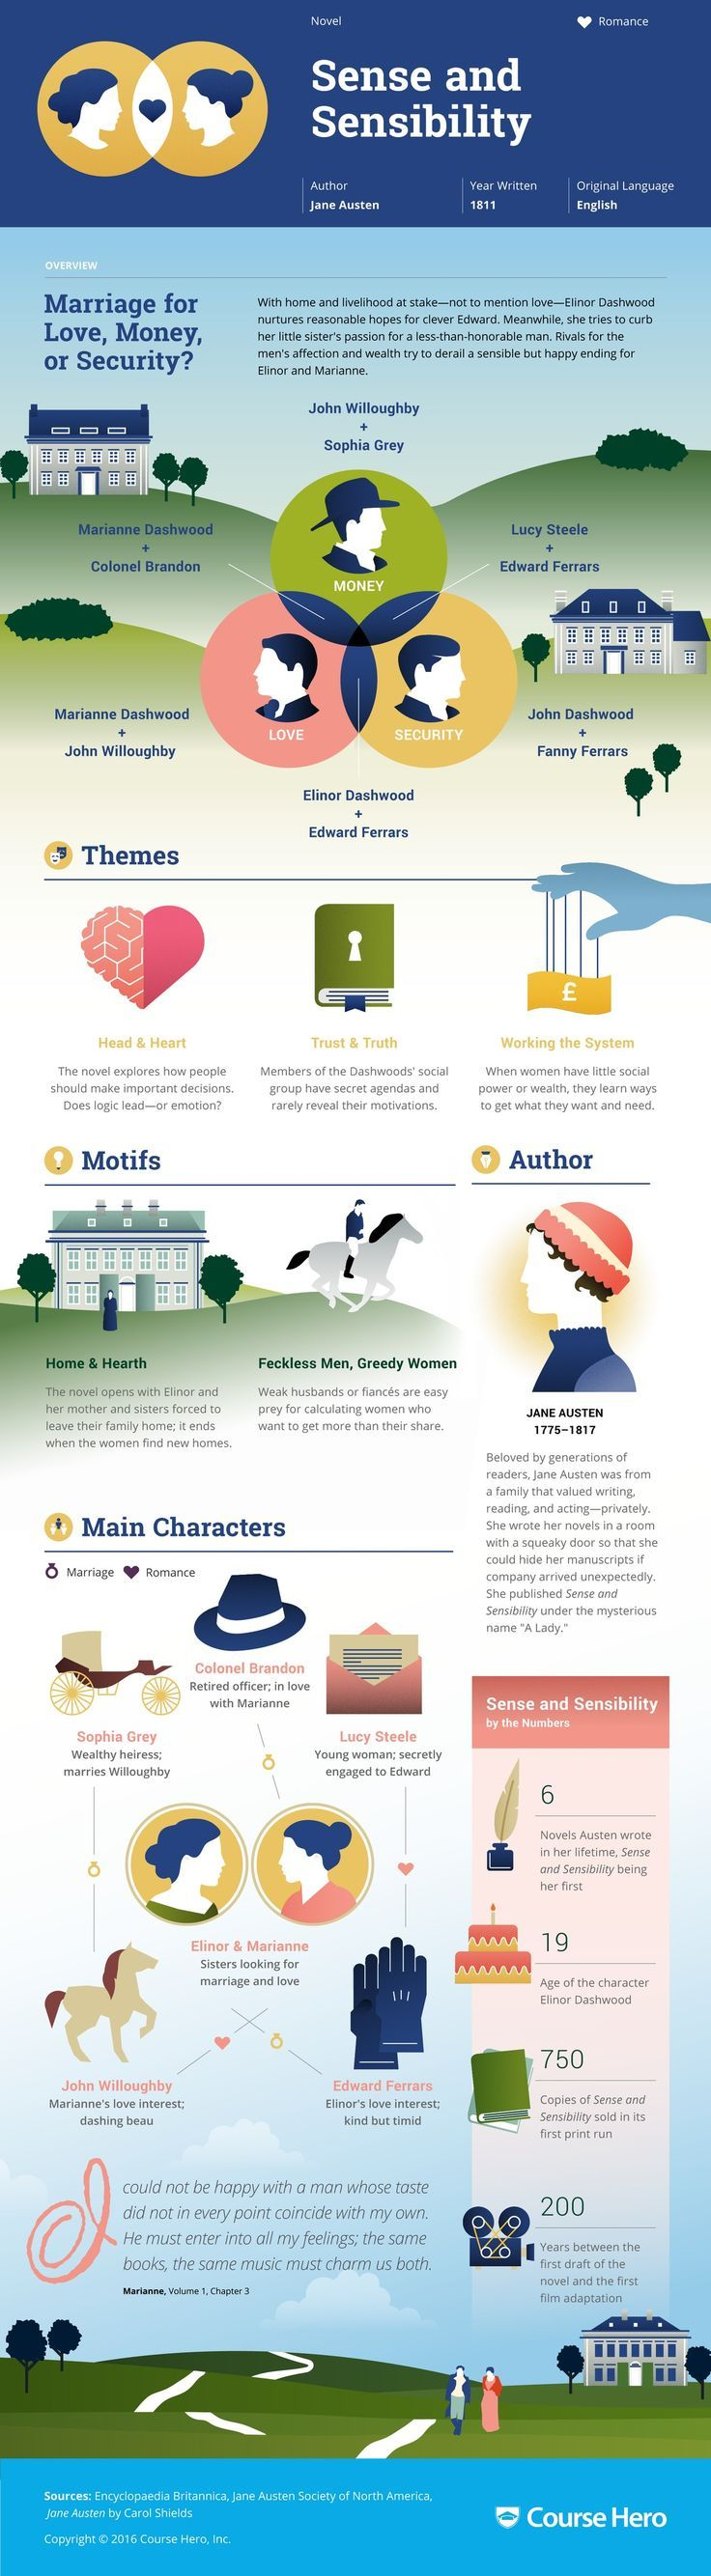 675 best books images on Pinterest   Good books, Book covers and Big ...